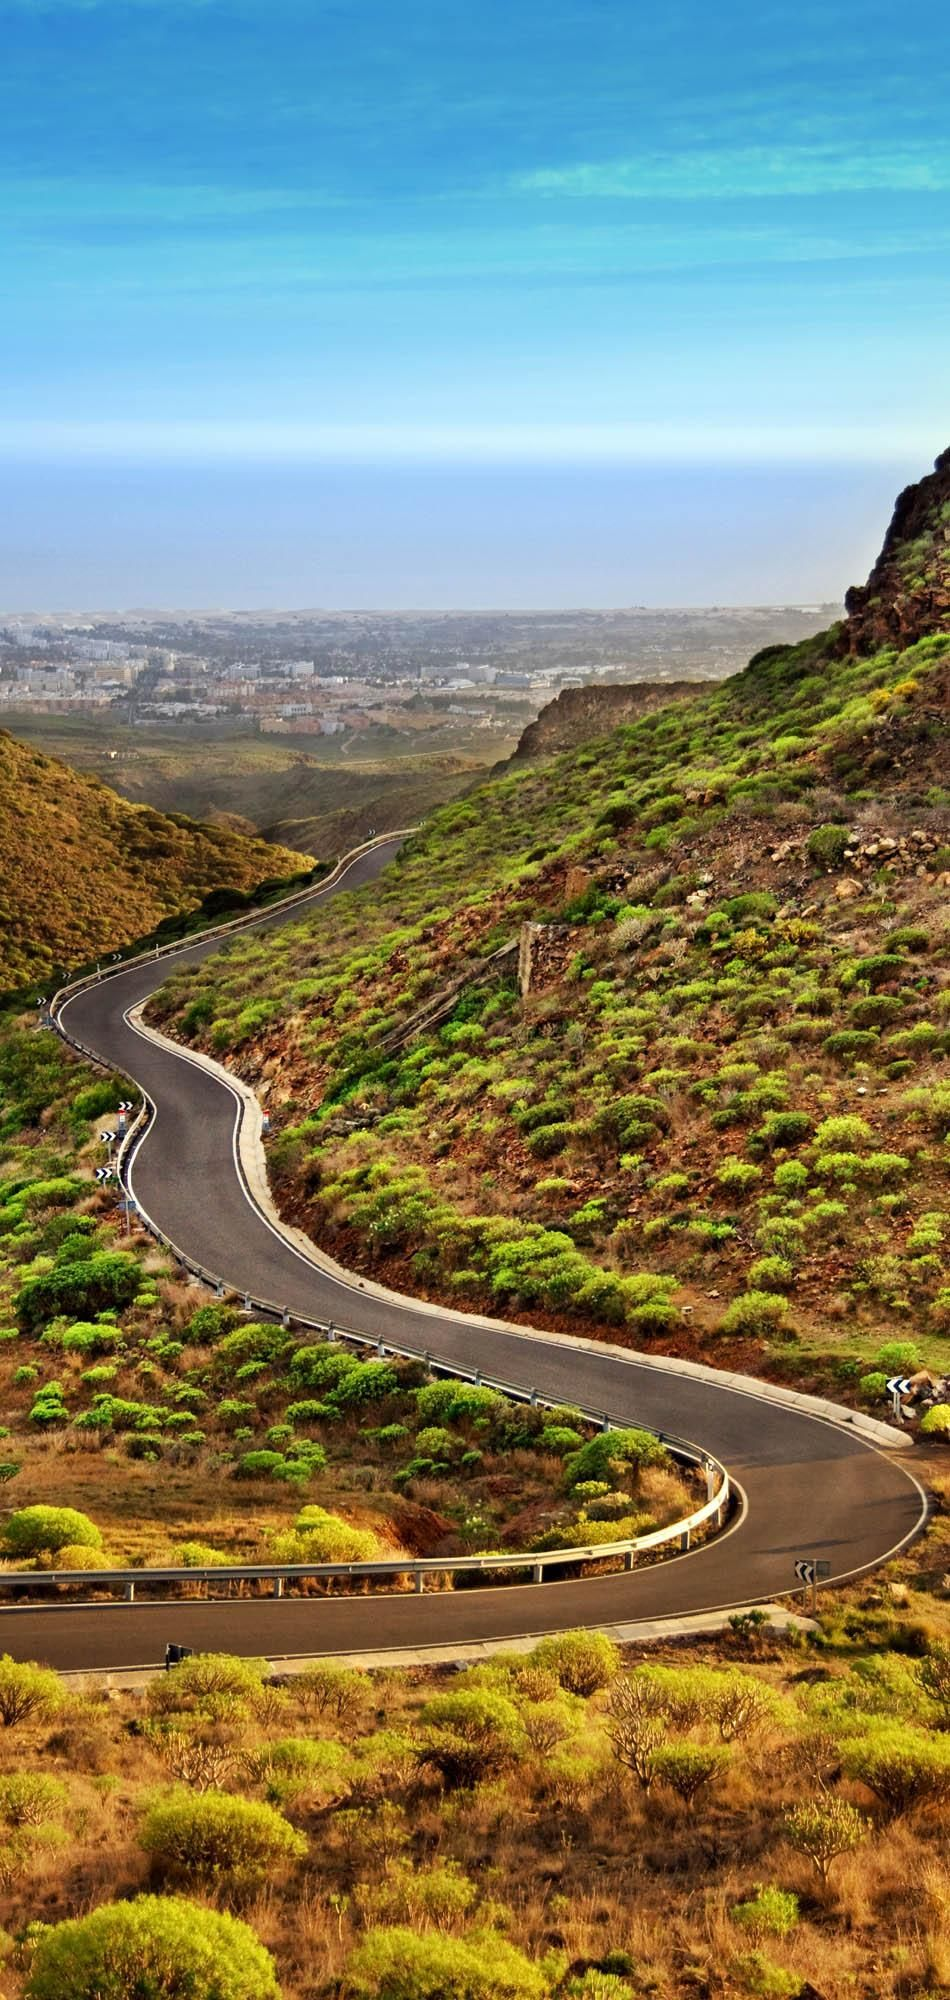 Winding Magnificent Road in mountains of Gran Canaria in Canary Islands | 23 Roads you Have to Drive in Your Lifetime